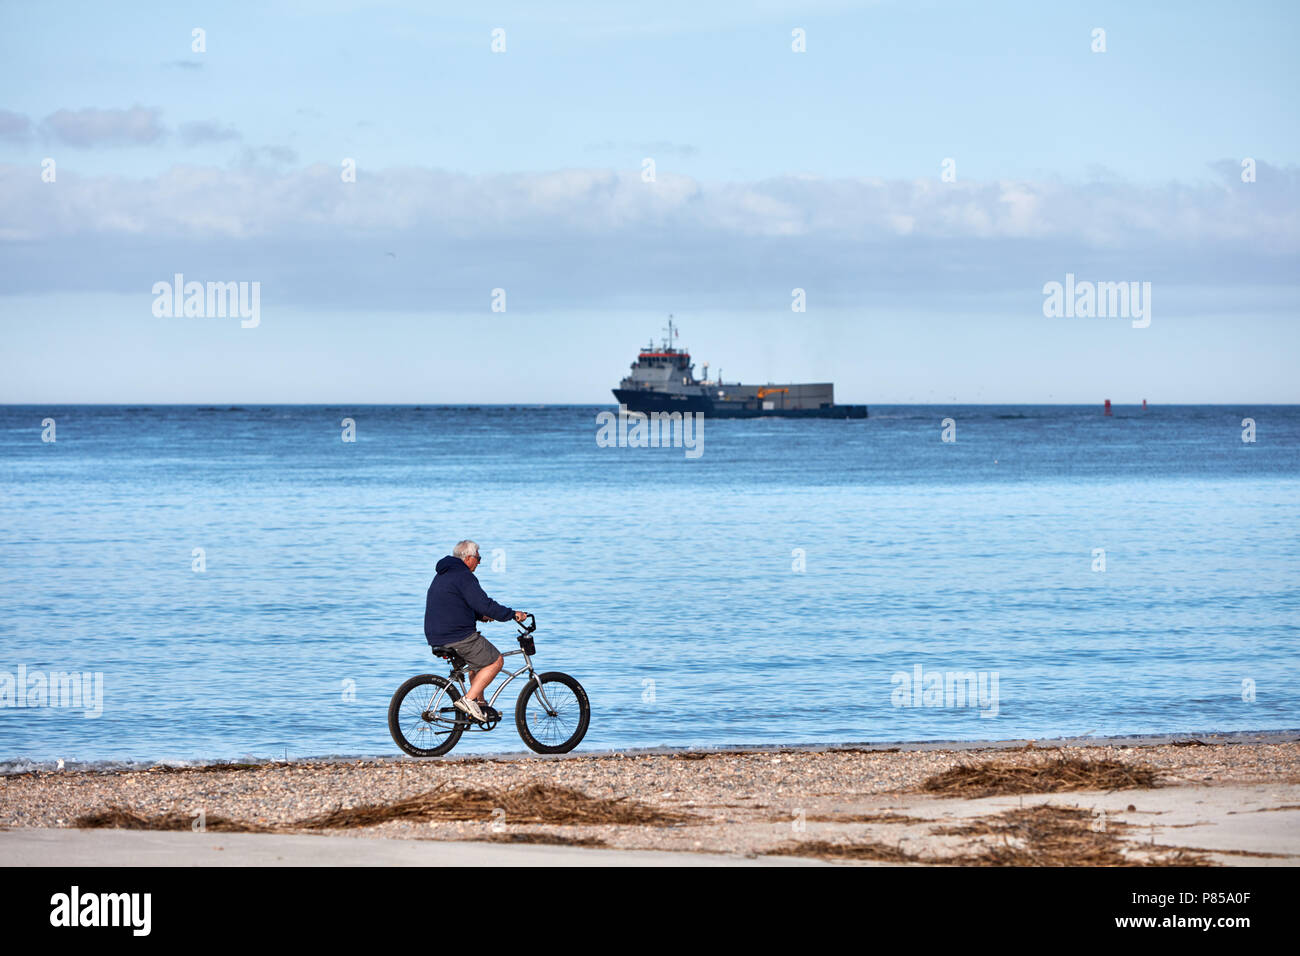 Man riding a bike on the beach as a US Navy ship sails past Stock Photo